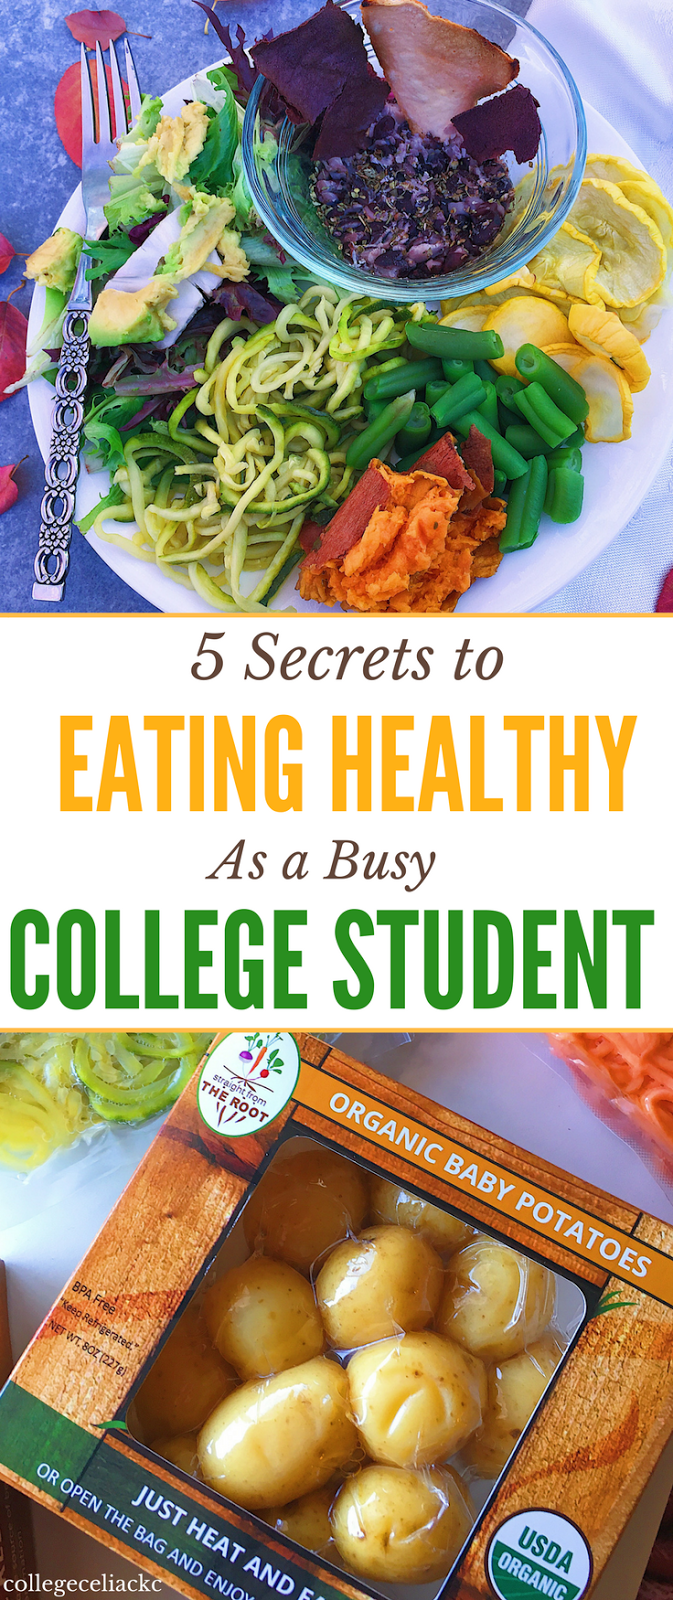 Secrets to eating healthy as a busy college student 5 secrets to eating healthy as a busy college student ccuart Images